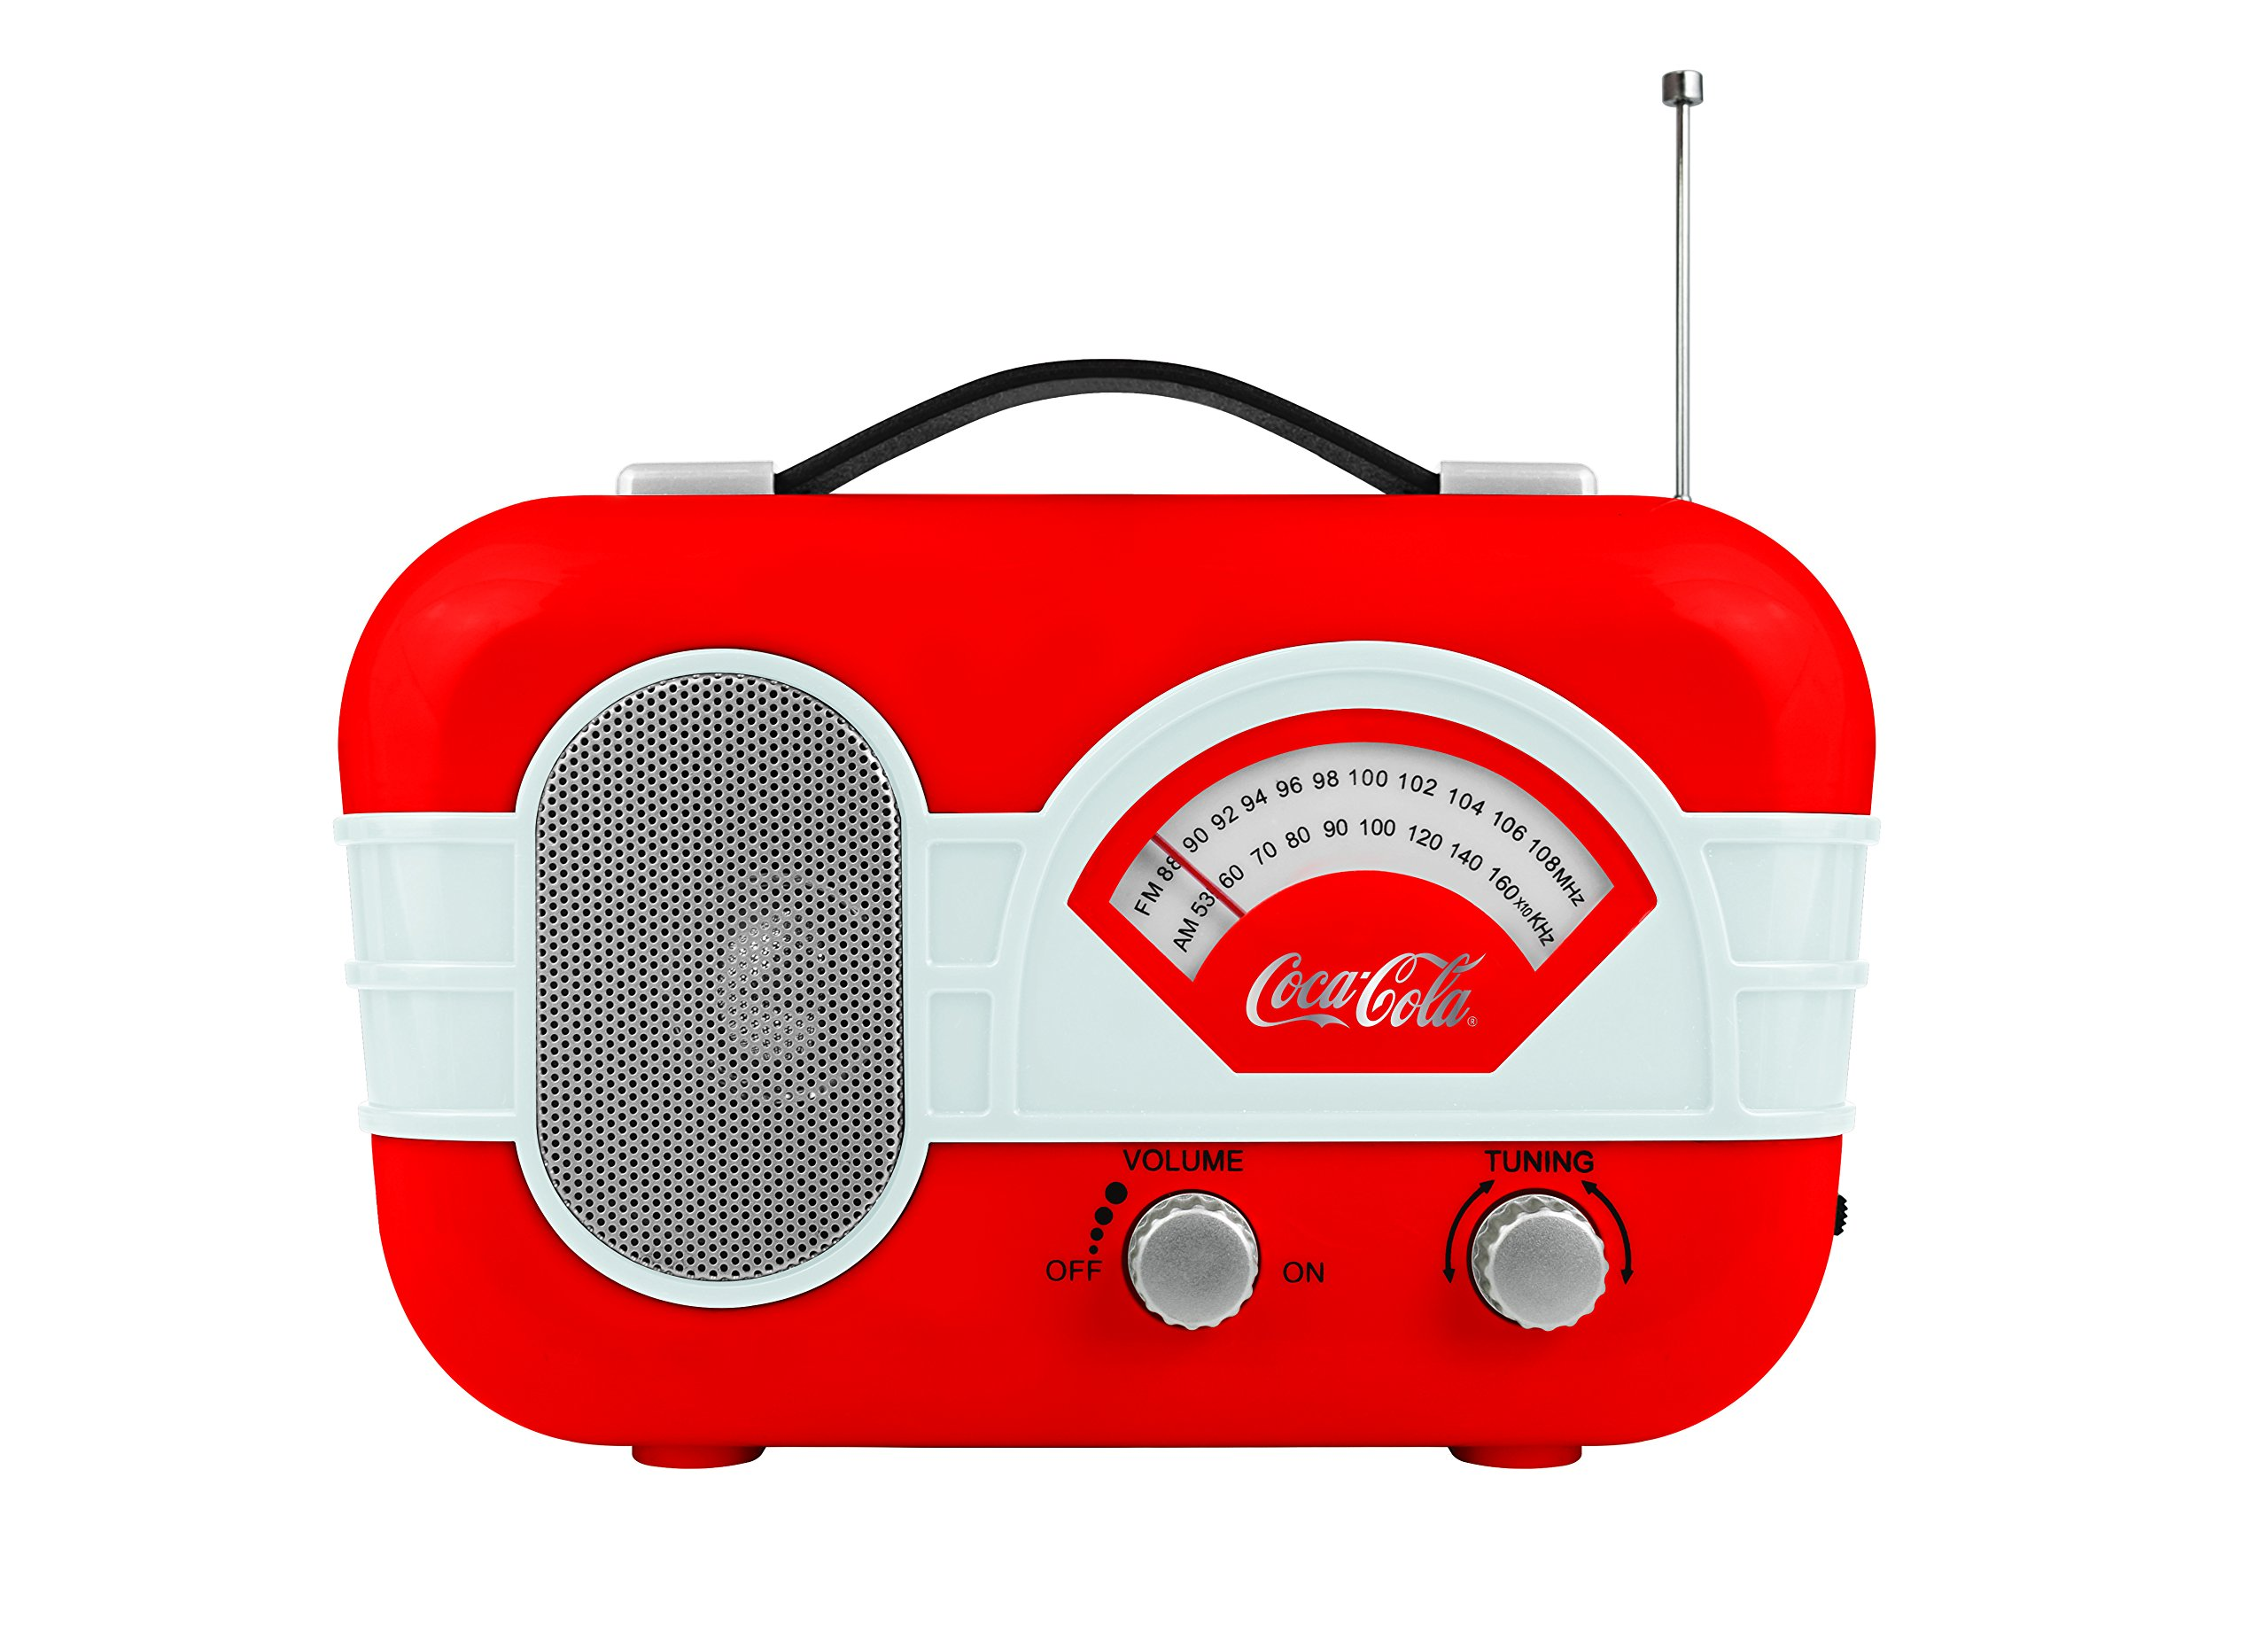 Coca-Cola Retro Desktop Vintage Style AM/FM Battery Operated Radio Auxillary Input Red/White